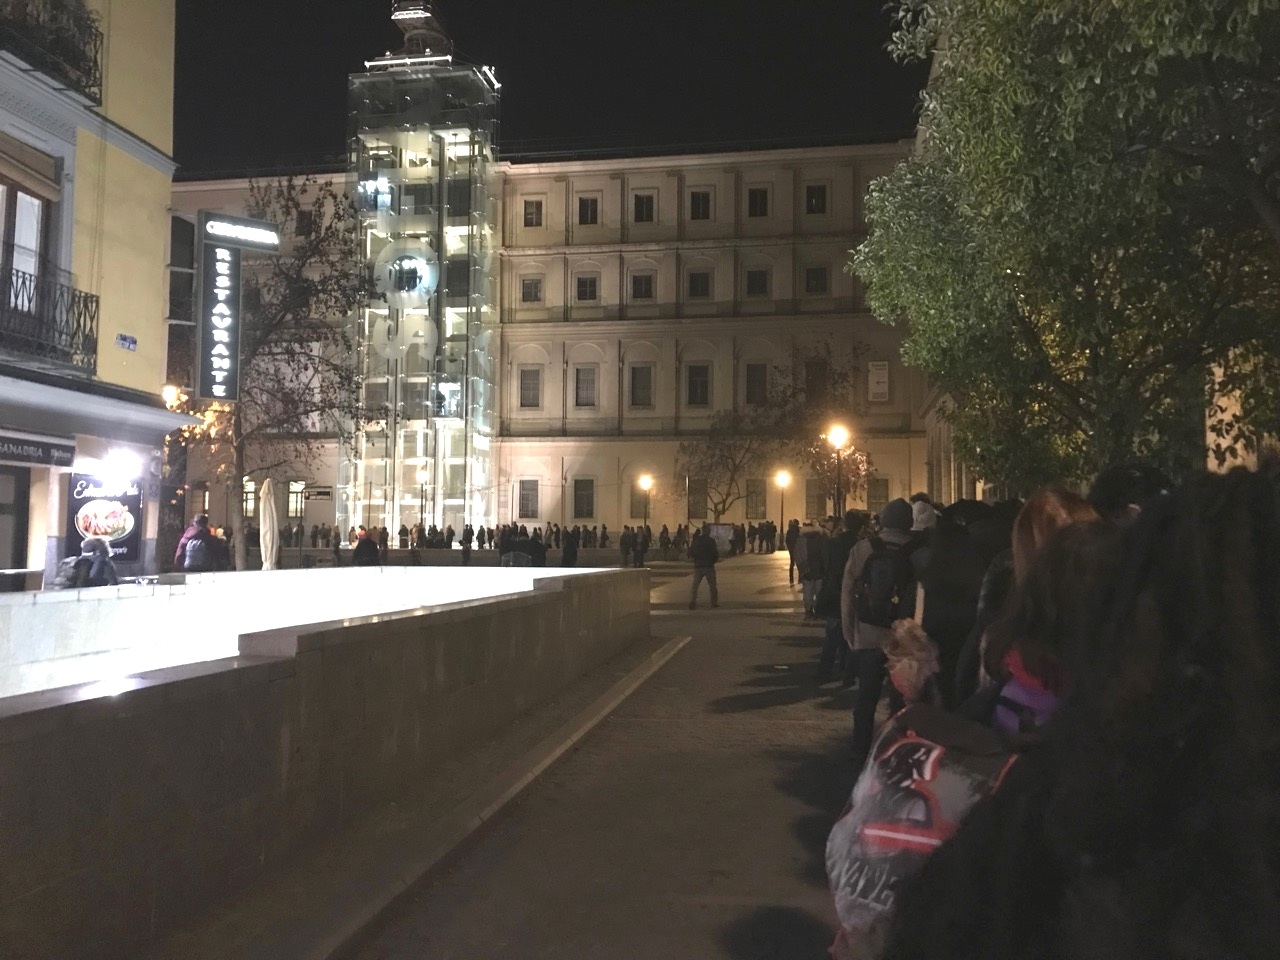 The line at the Reina Sofia | Madrid, SP